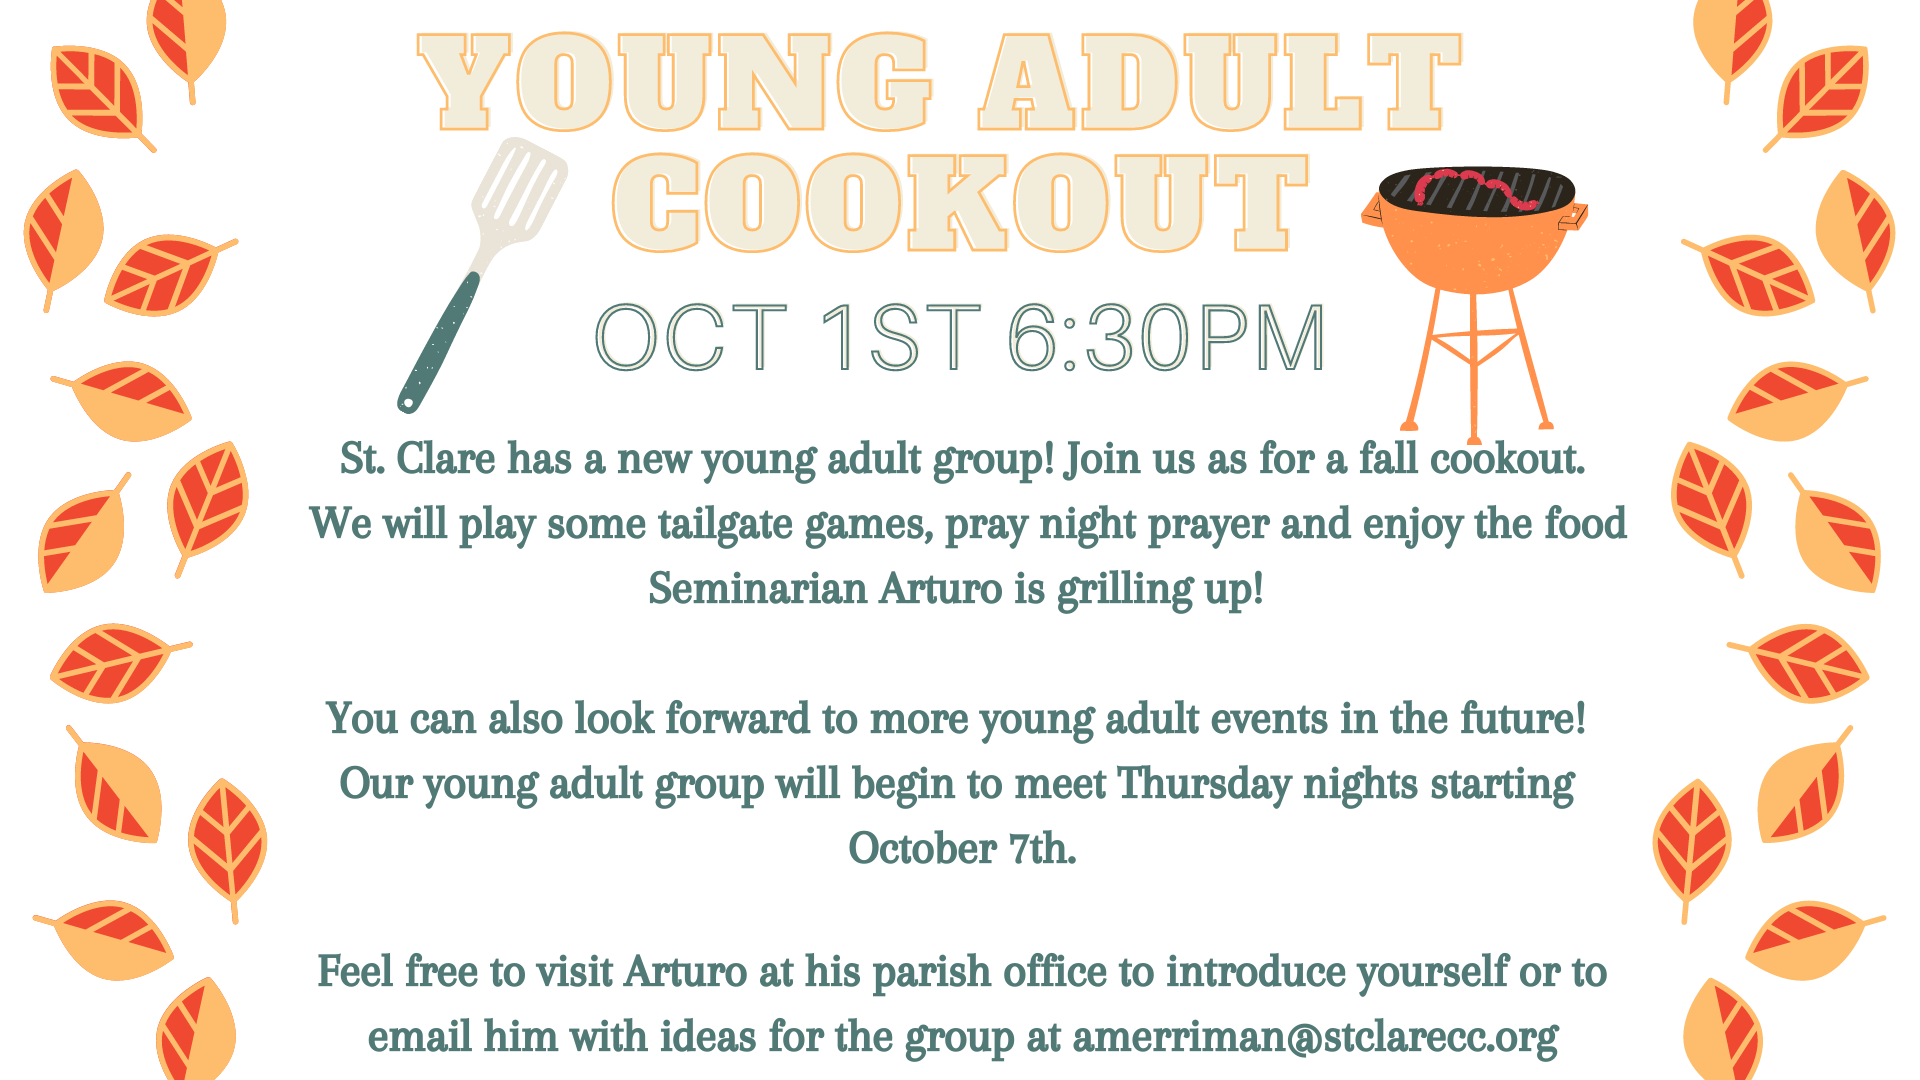 Young Adult Group Kick-off Cookout!